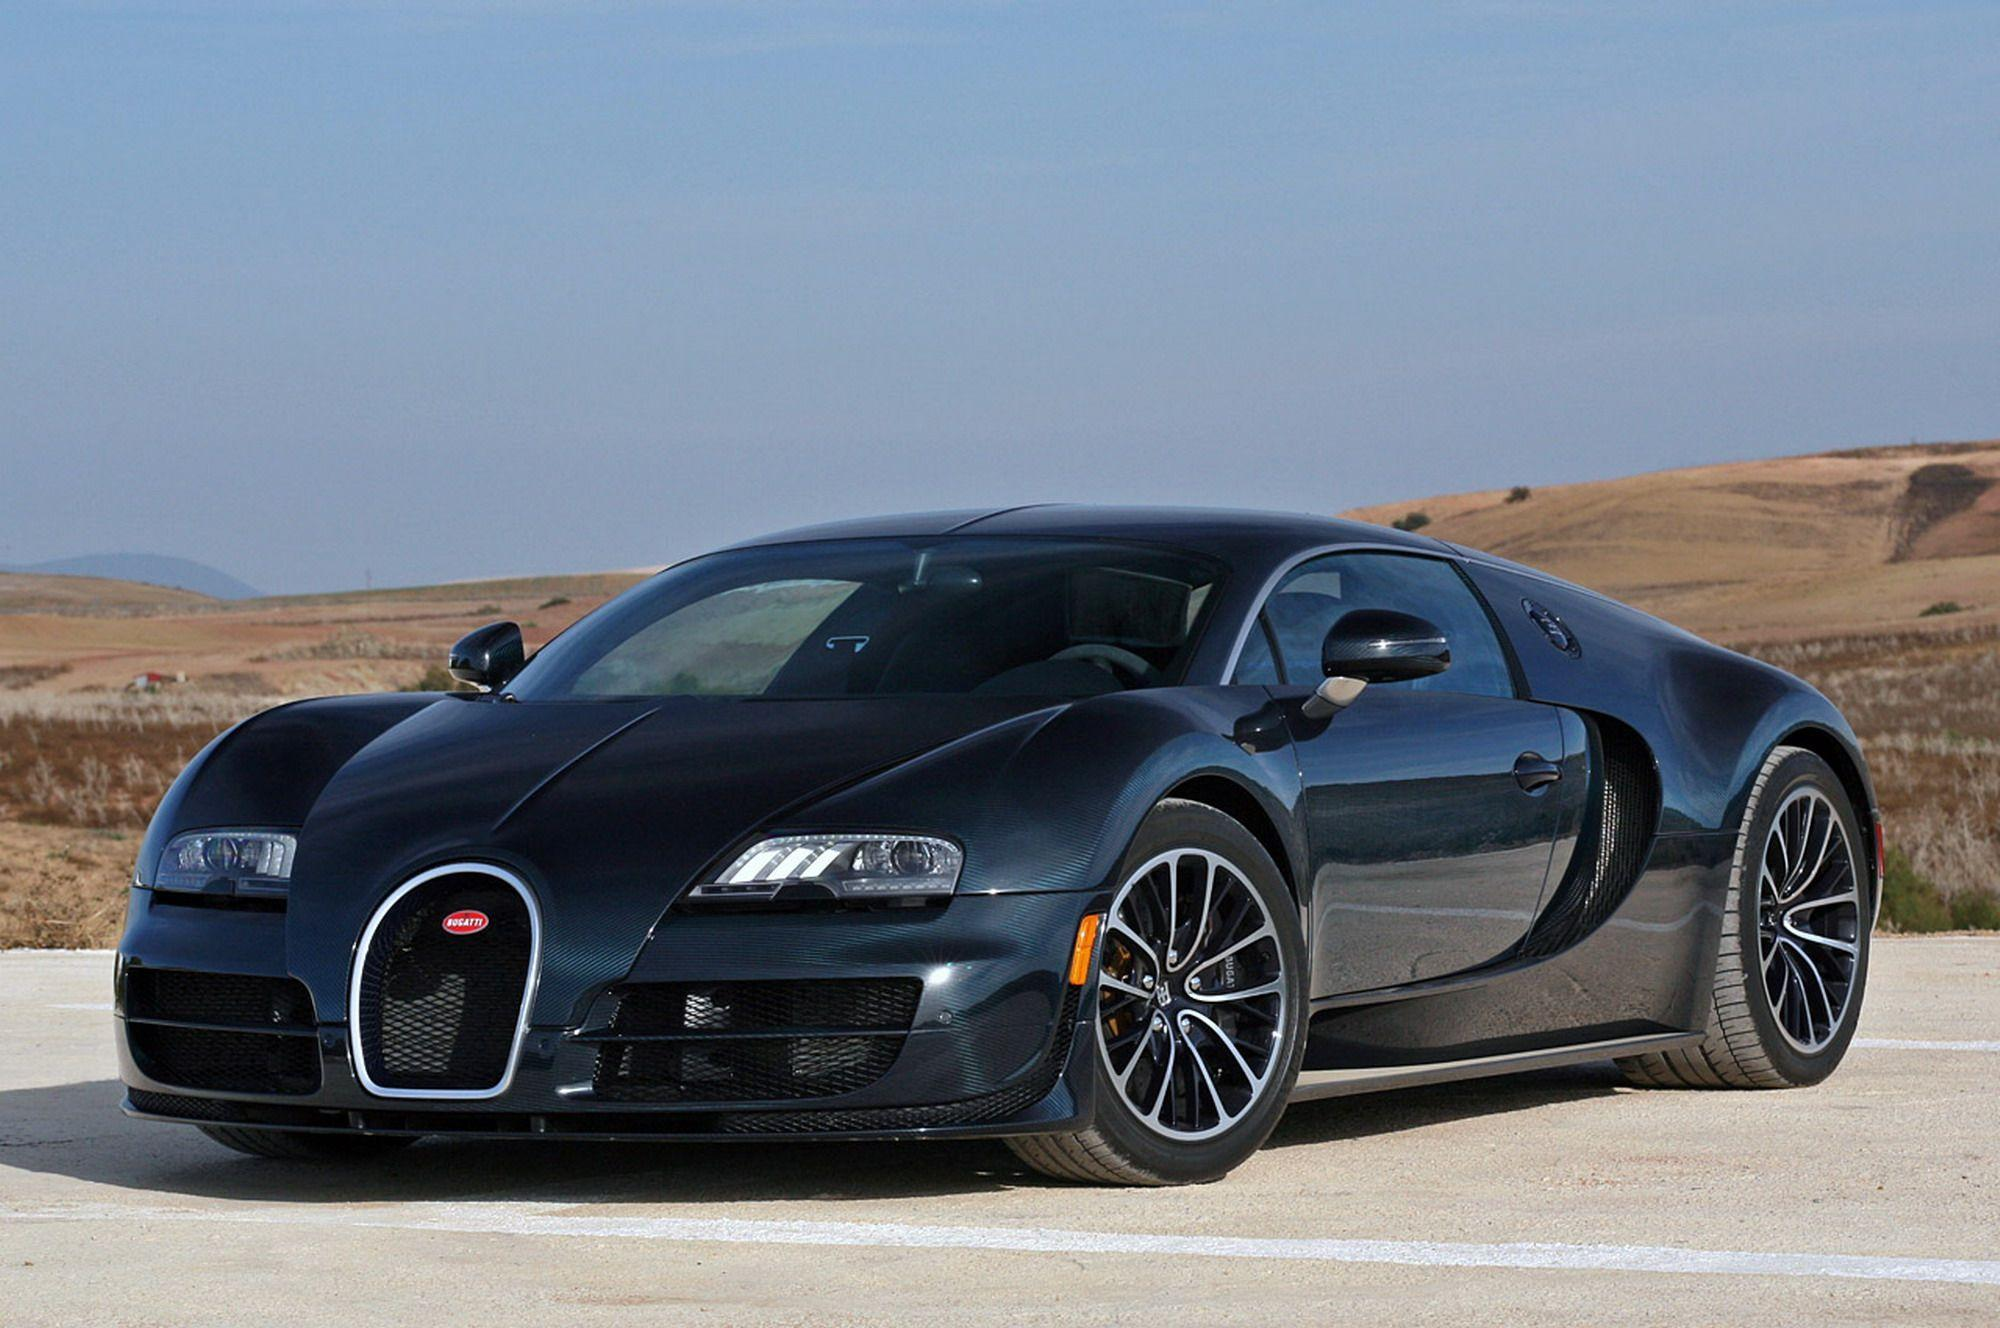 Bugatti Veyron Wallpapers Iphone Mobile Wallpapers HD Download